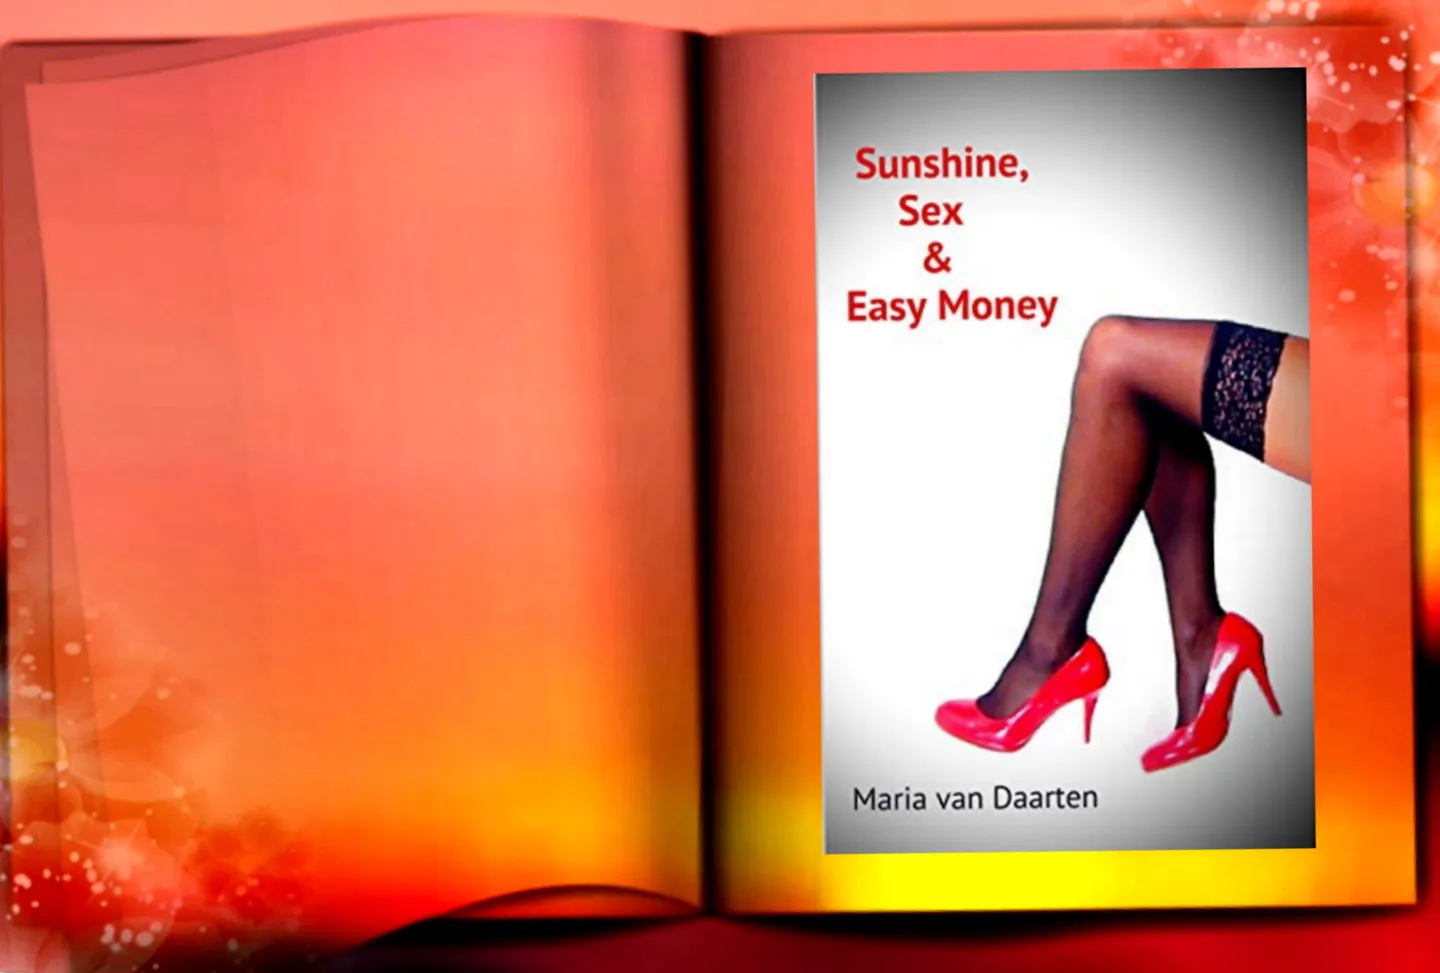 Chapter 3: Sunshine, Sex & Easy Money